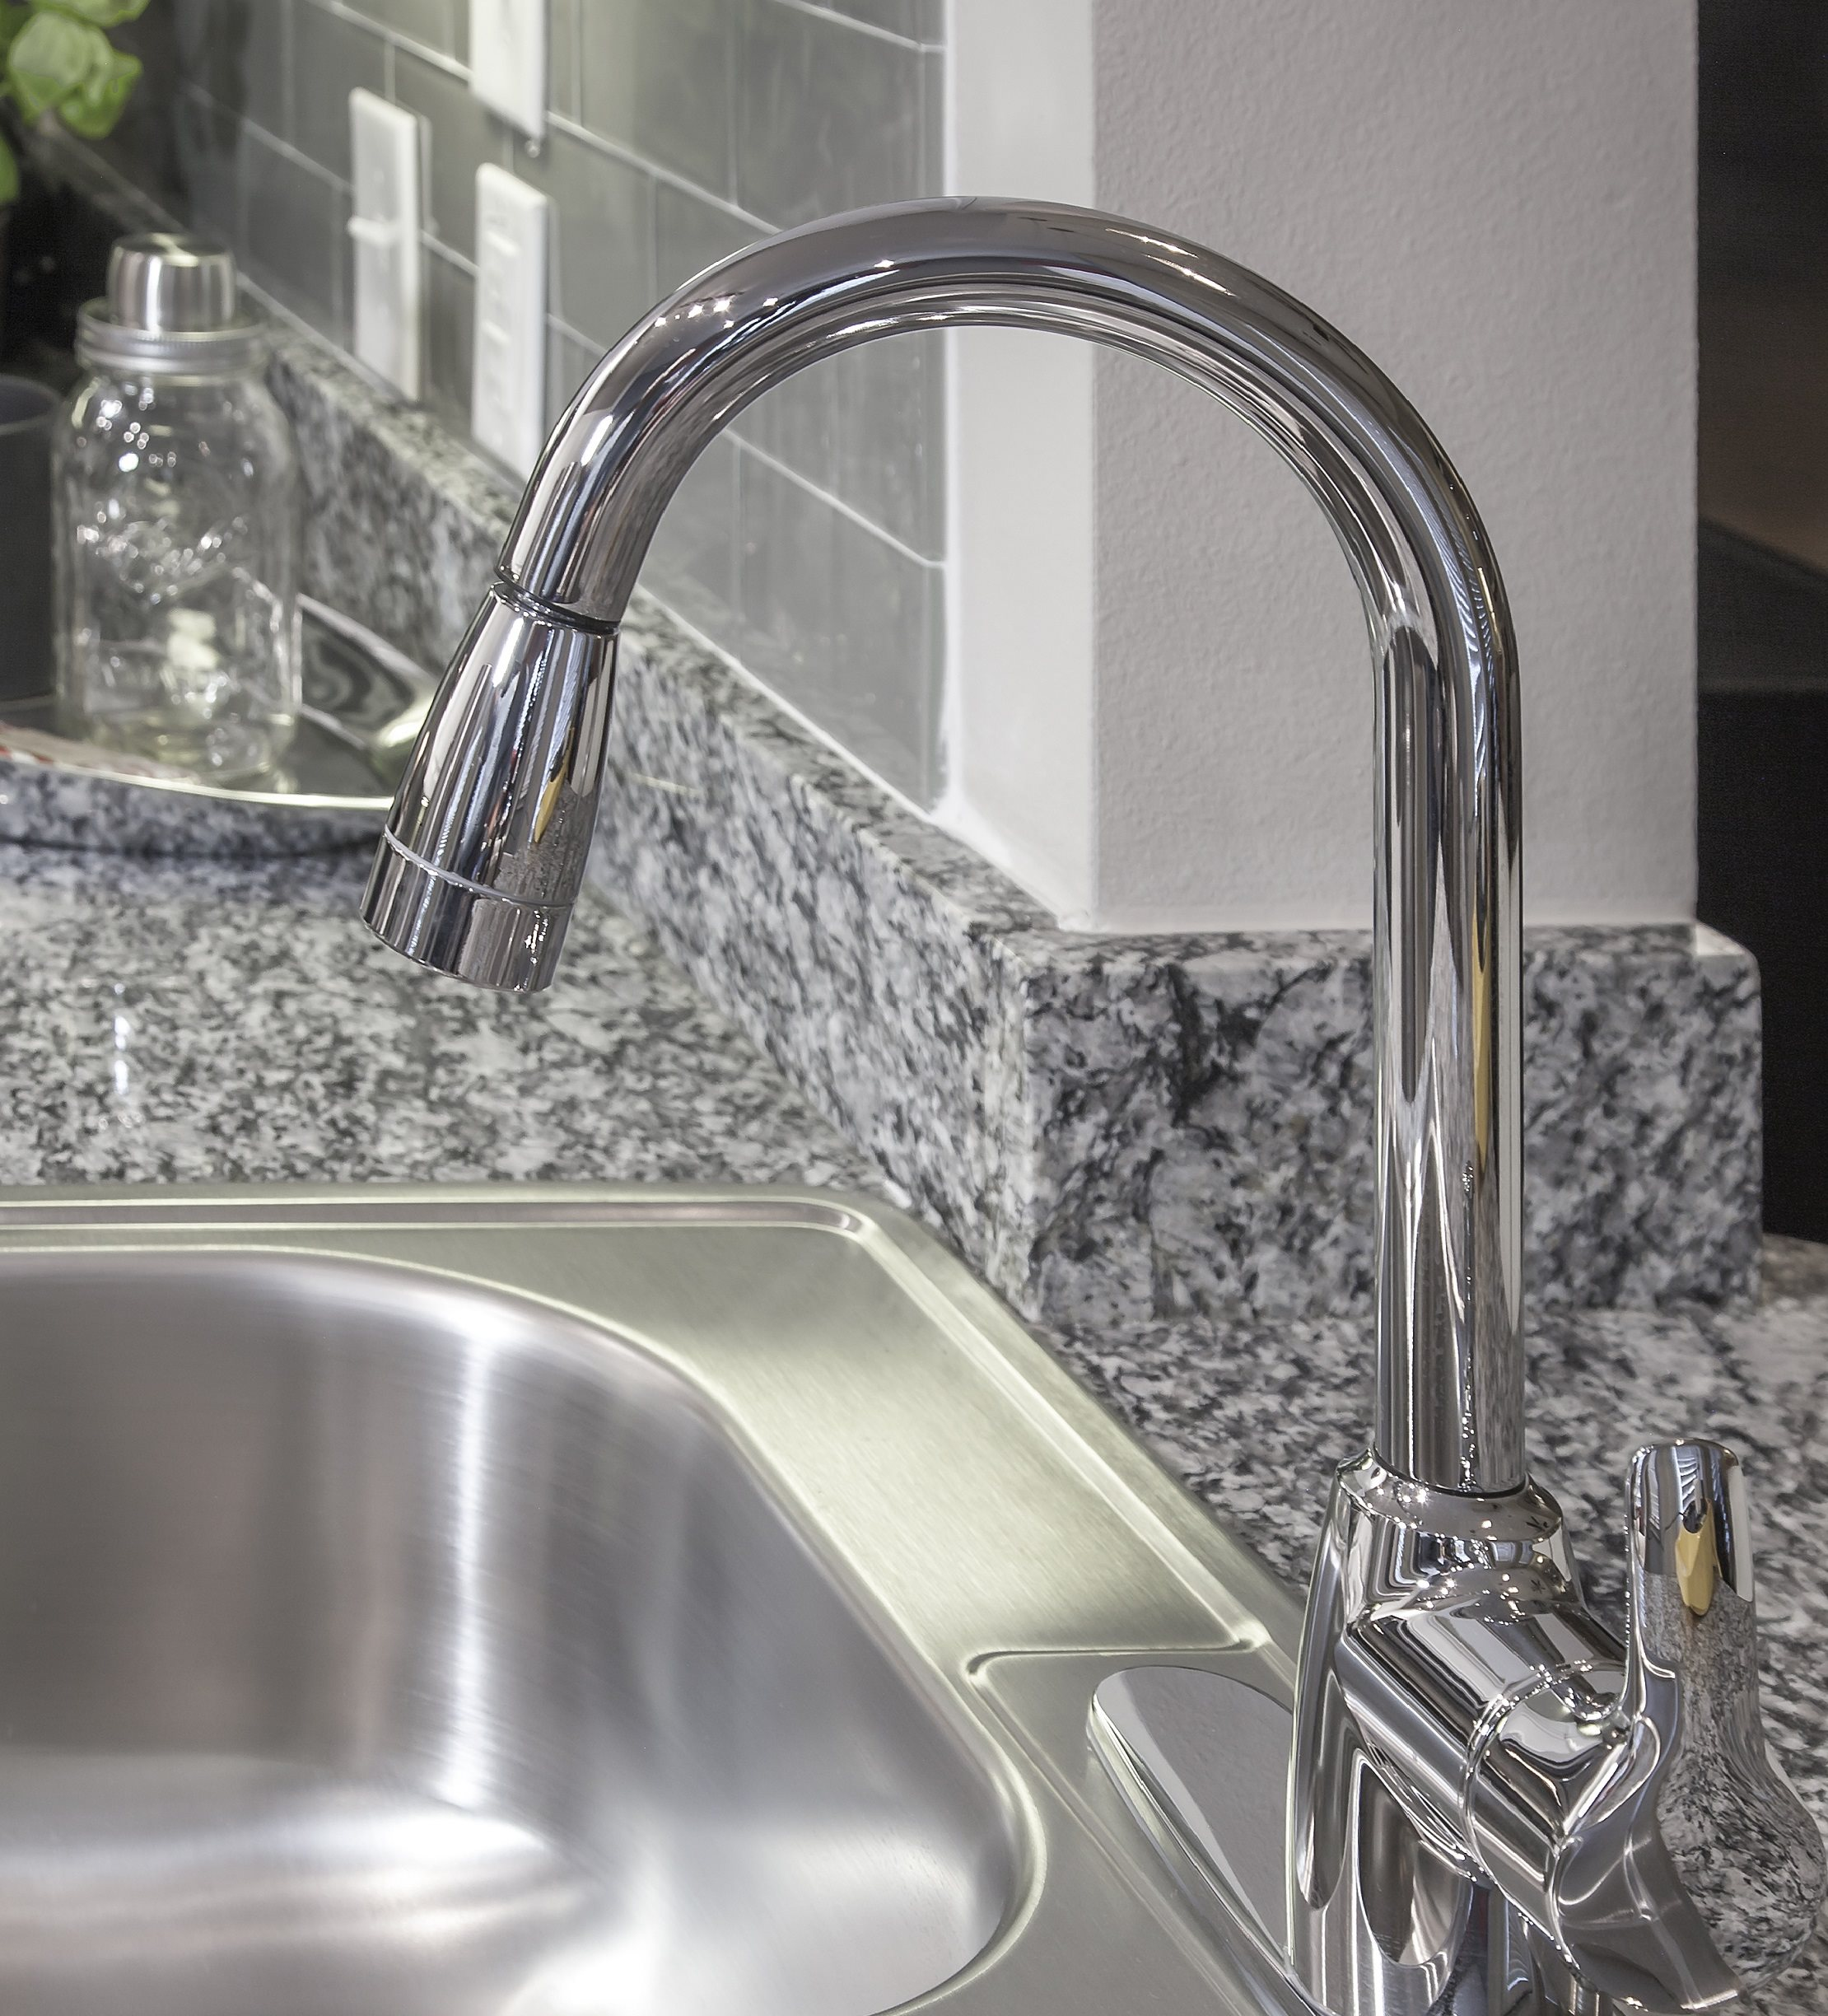 Goose neck faucet at Touchstone Modern Apartment Homes, 11996 Ridge Parkway, CO